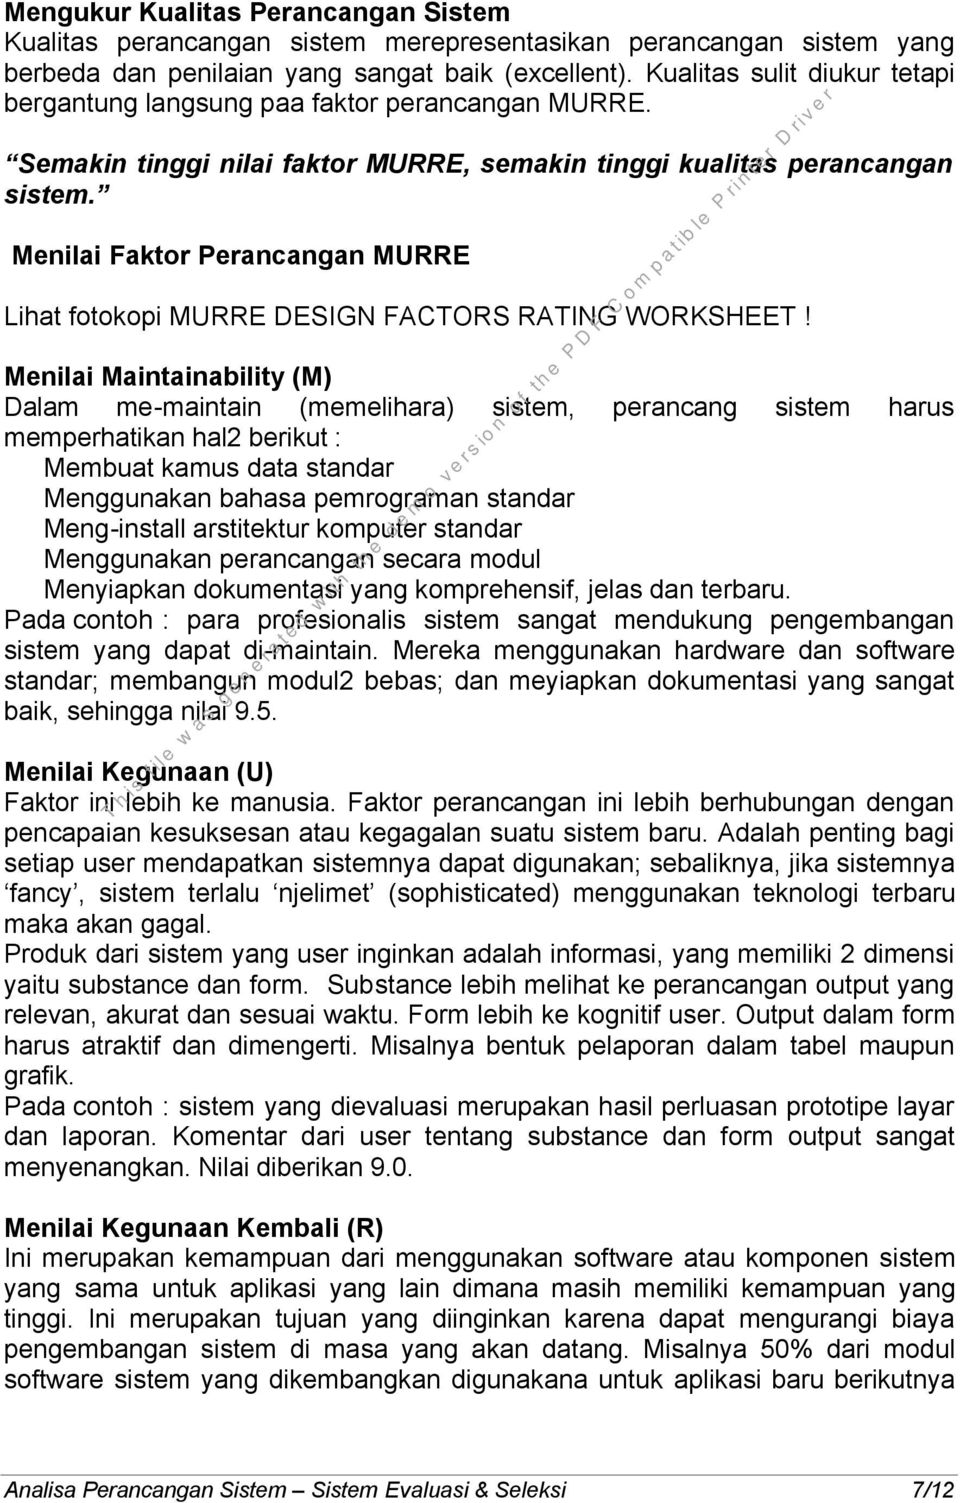 Menilai Faktor Perancangan MURRE Lihat fotokopi MURRE DESIGN FACTORS RATING WORKSHEET!